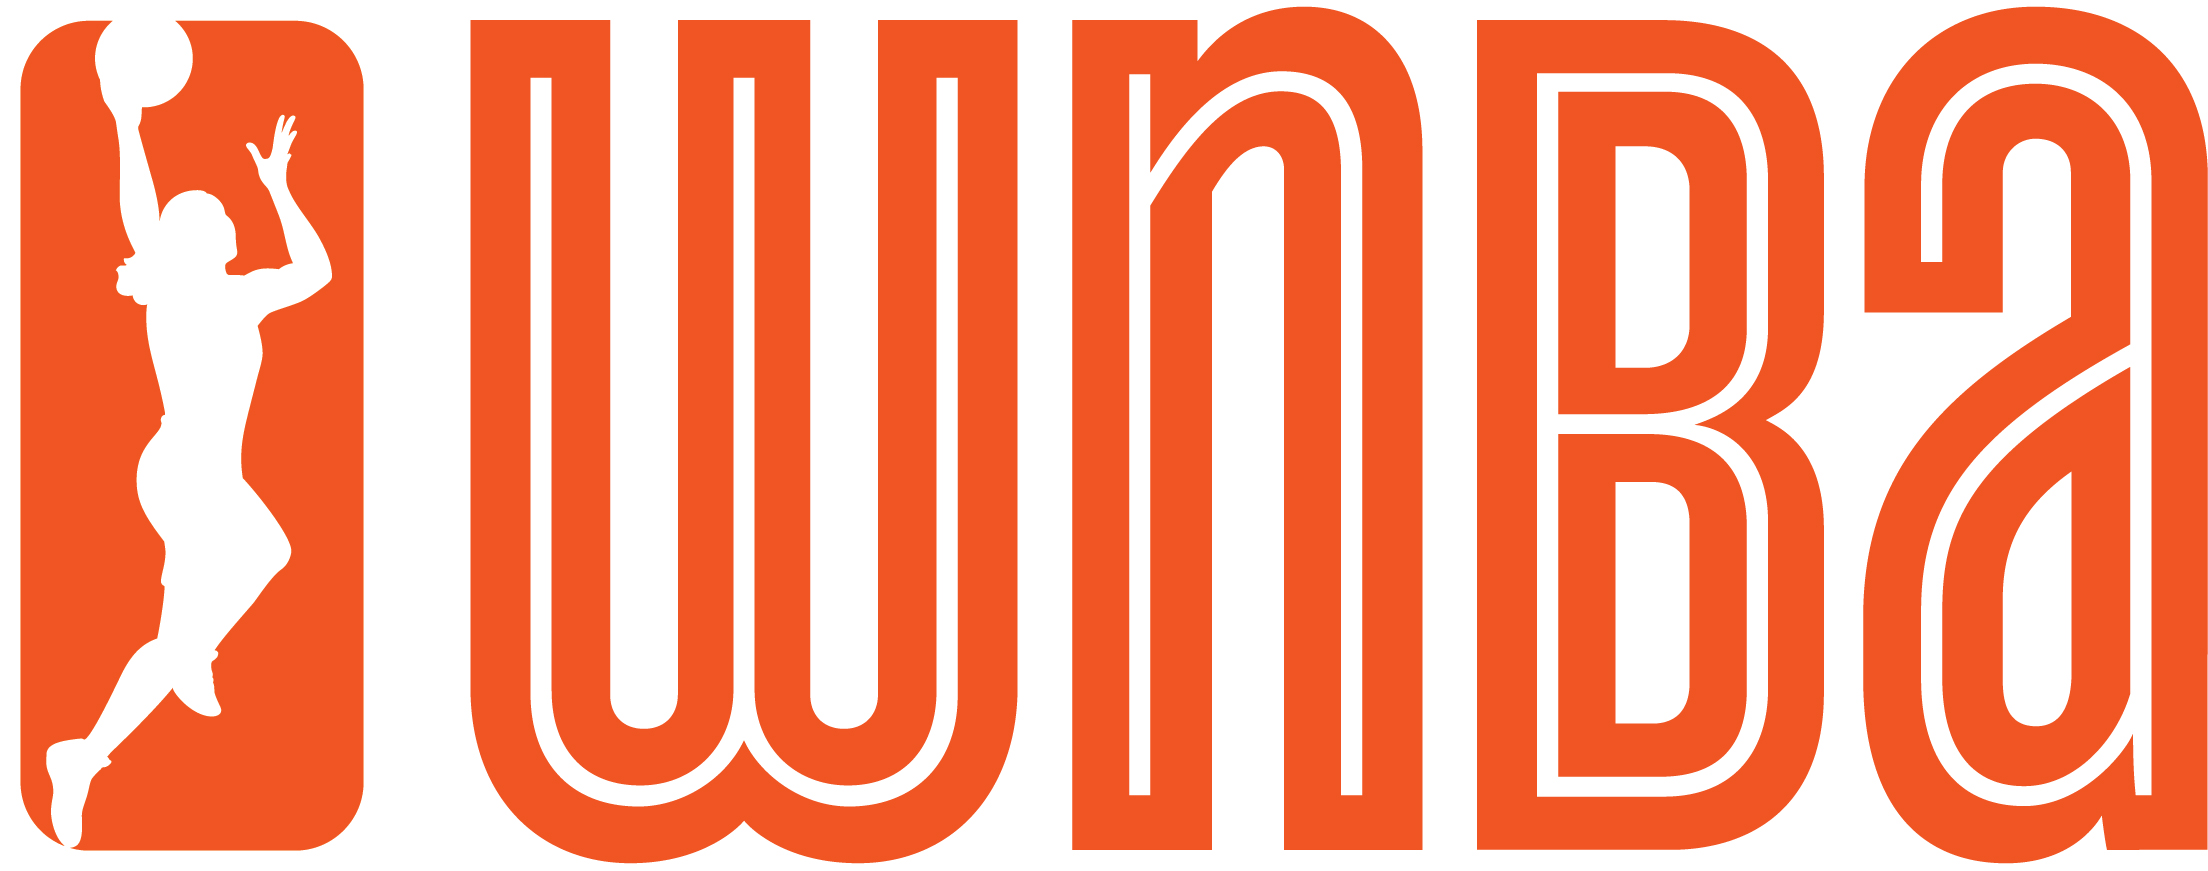 2018 WNBA.com GM Survey: Sparks predicted to win championship; Maya Moore tabbed to be MVP